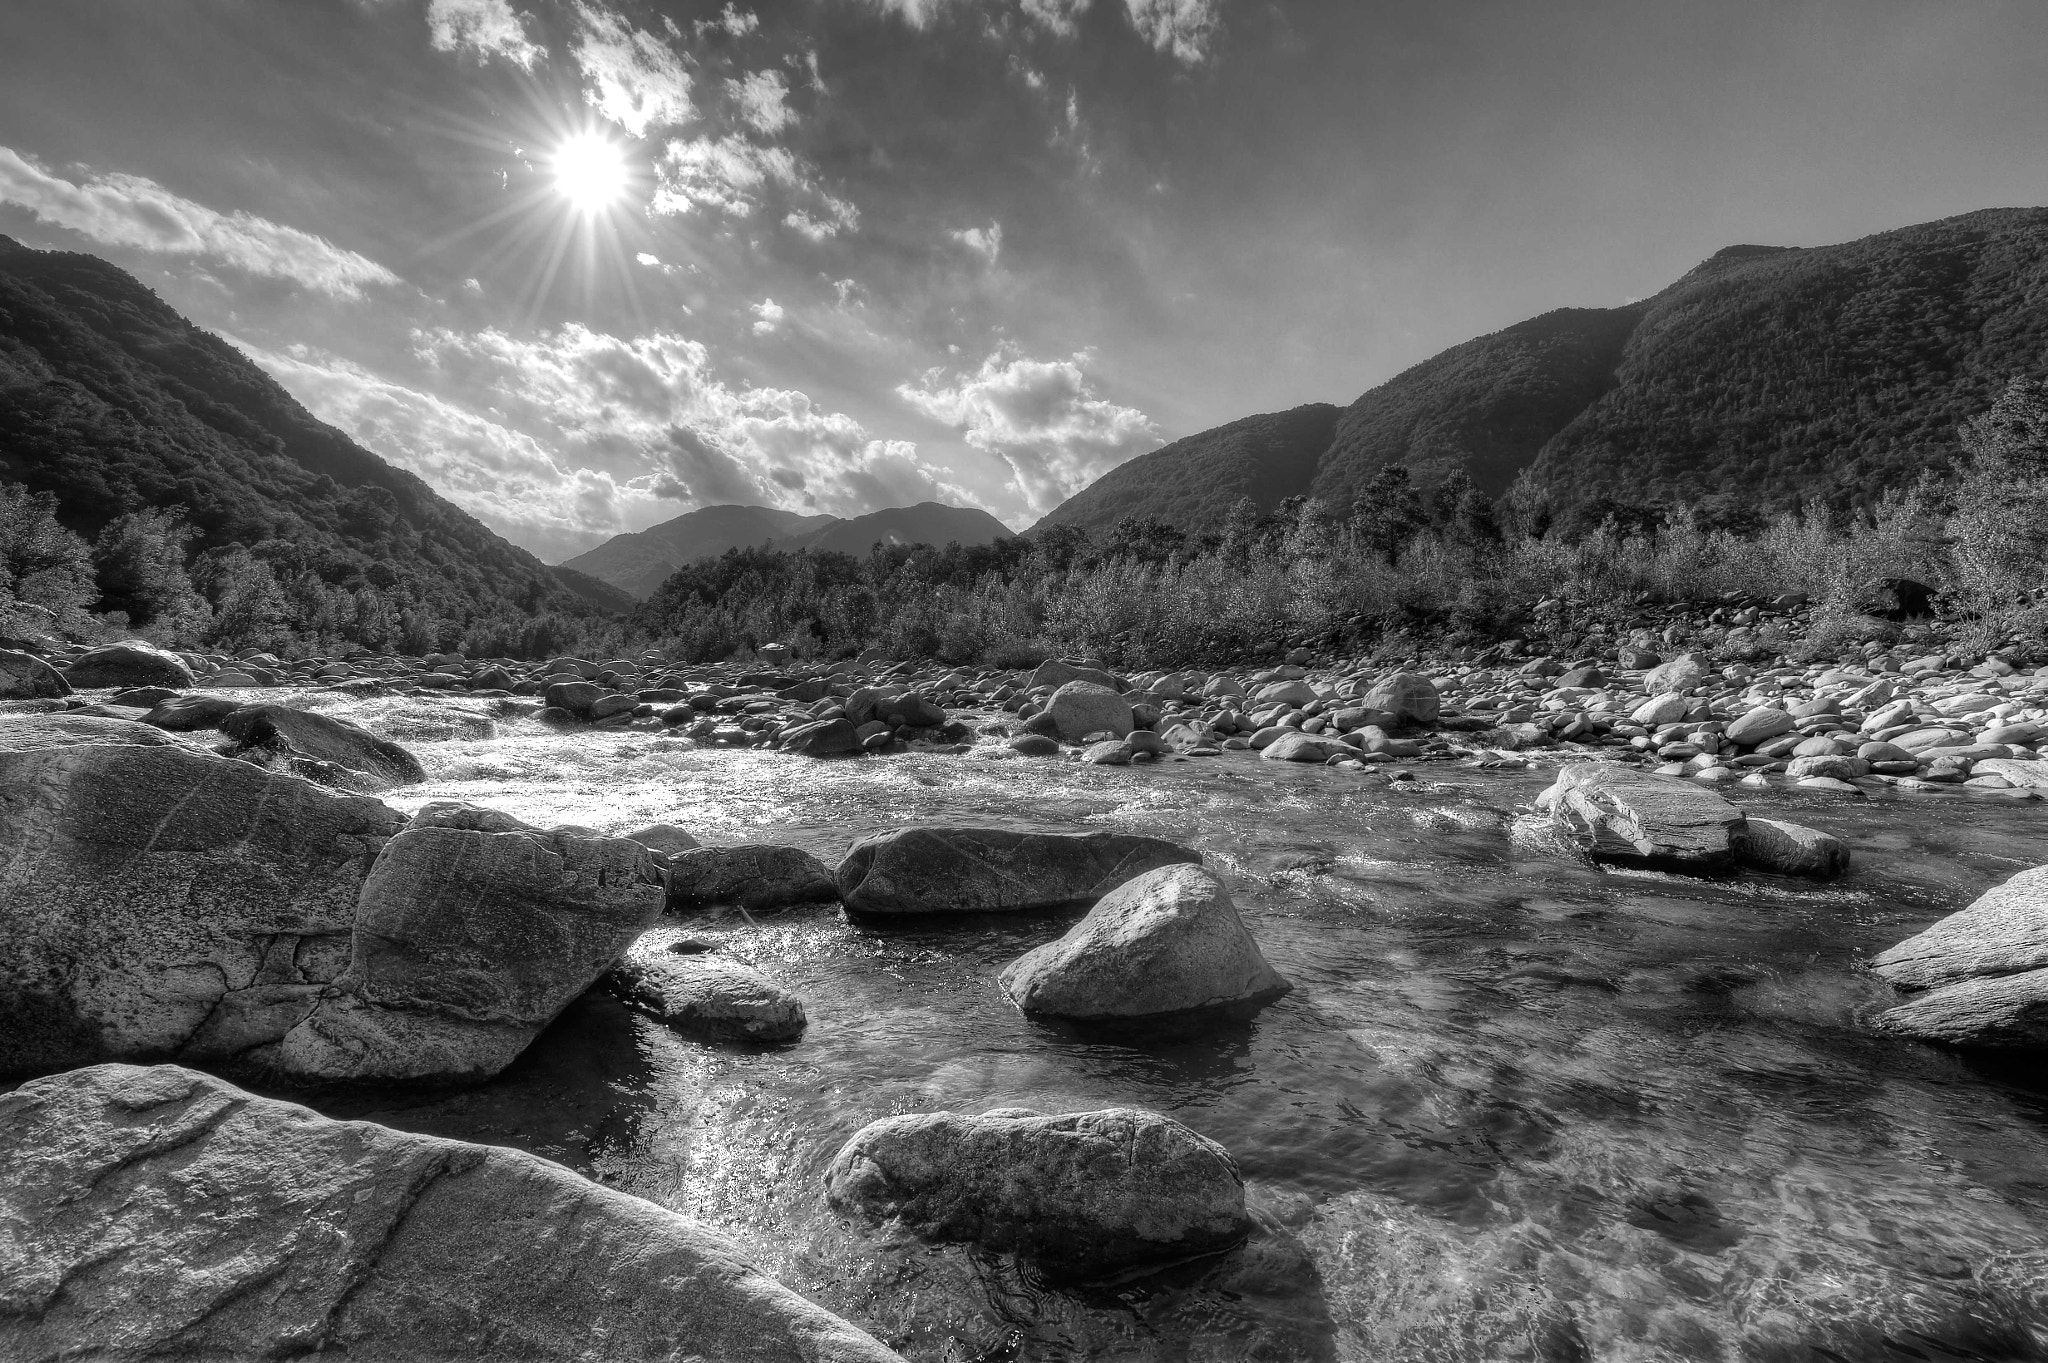 Photograph Im Tessin (2) sw - Melezza bei Losone by Franz Engels on 500px